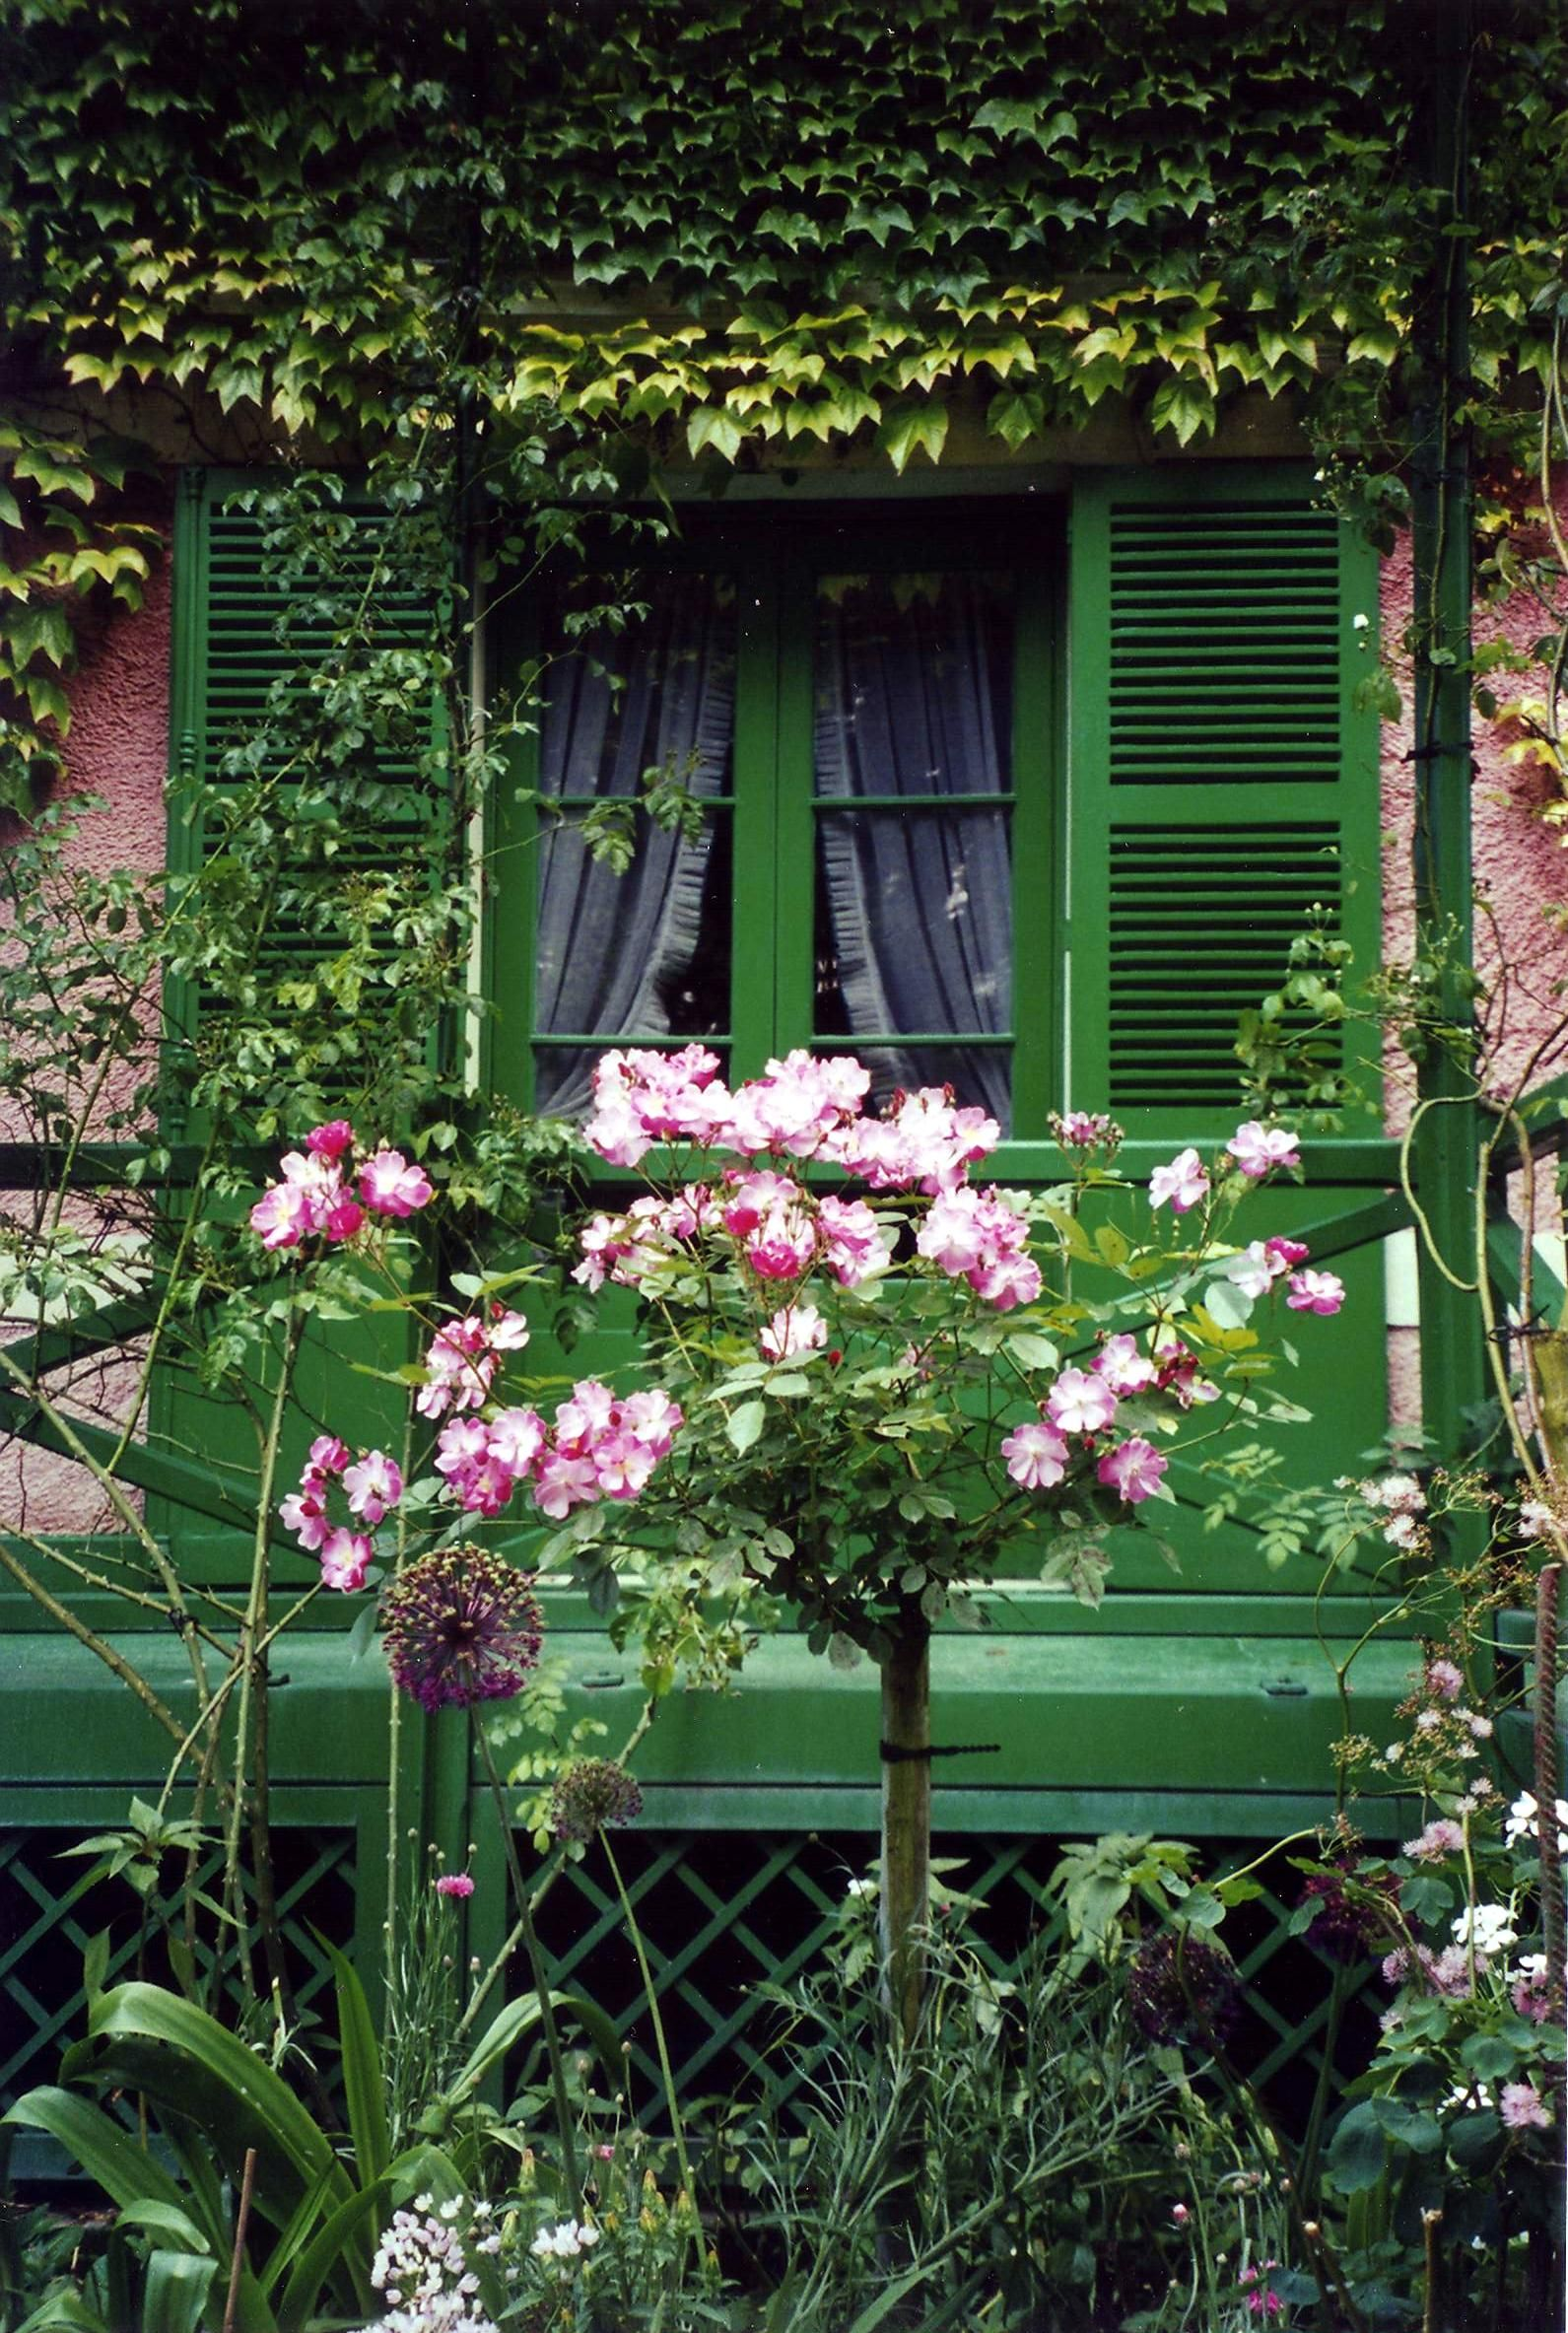 House garden trees  Roses and window of Monetus house  Beautiful balconies and Windows